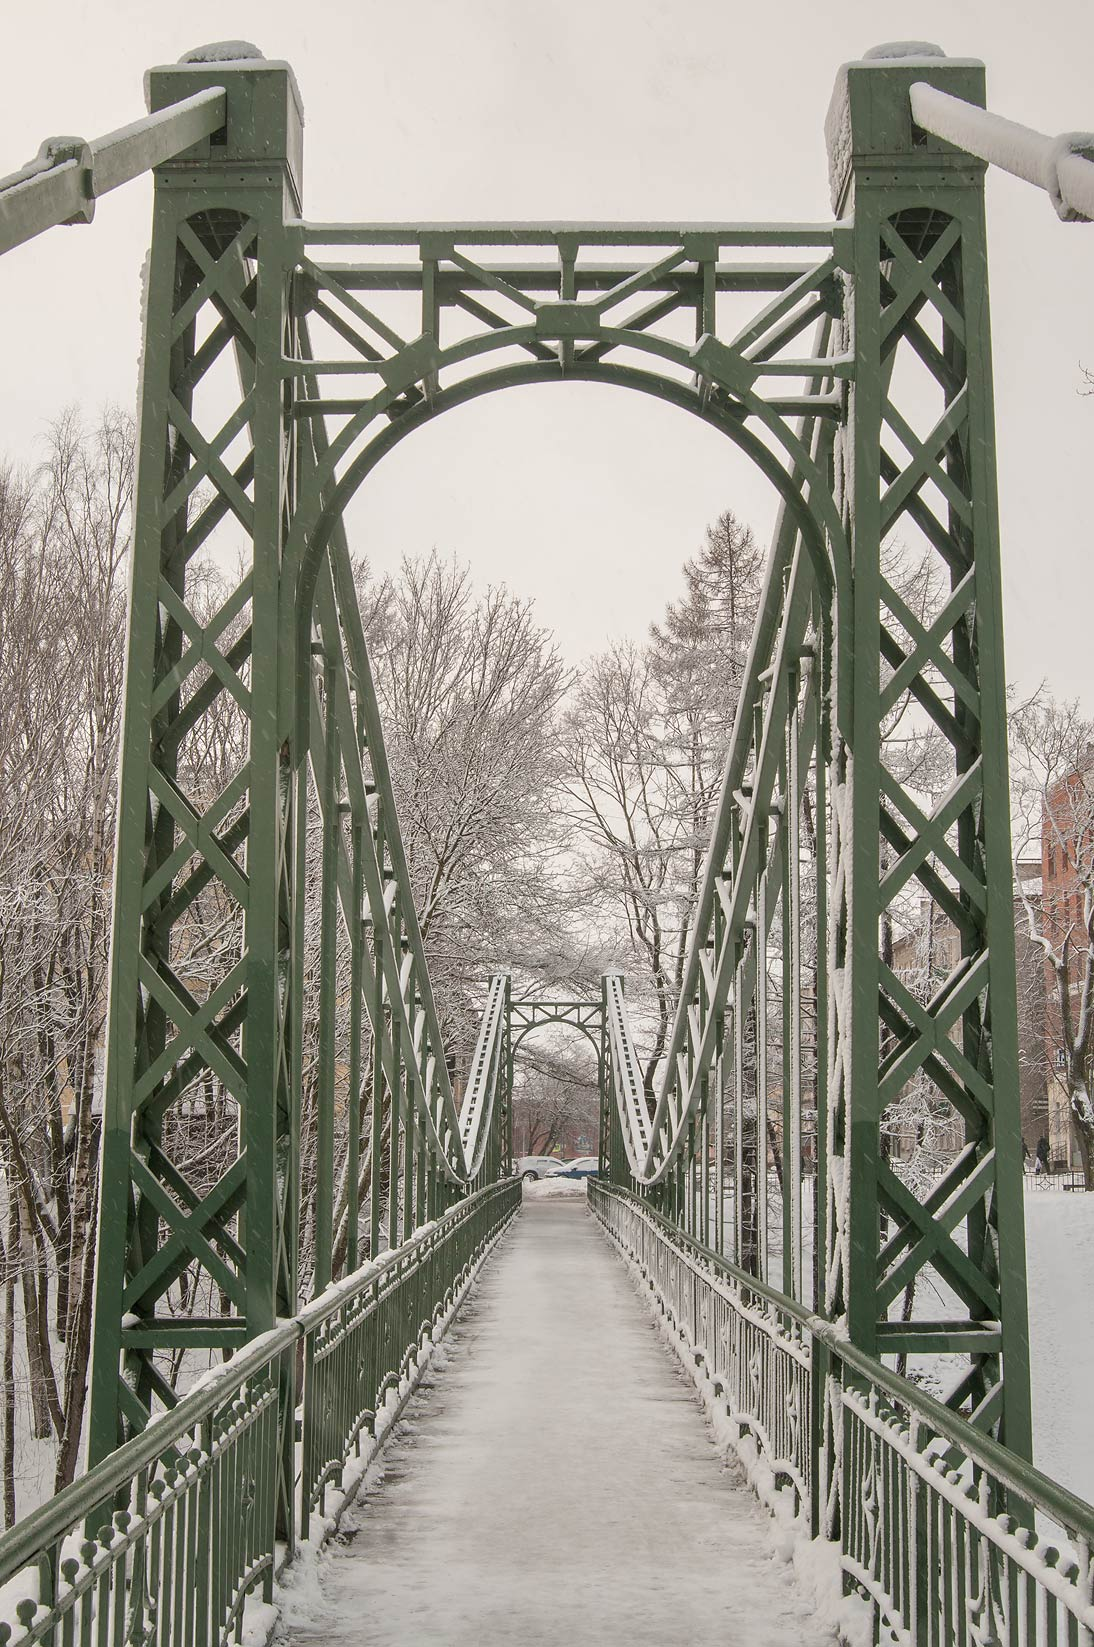 Makarovsky Bridge in snow. Kronstadt (part of St.Petersburg), Russia